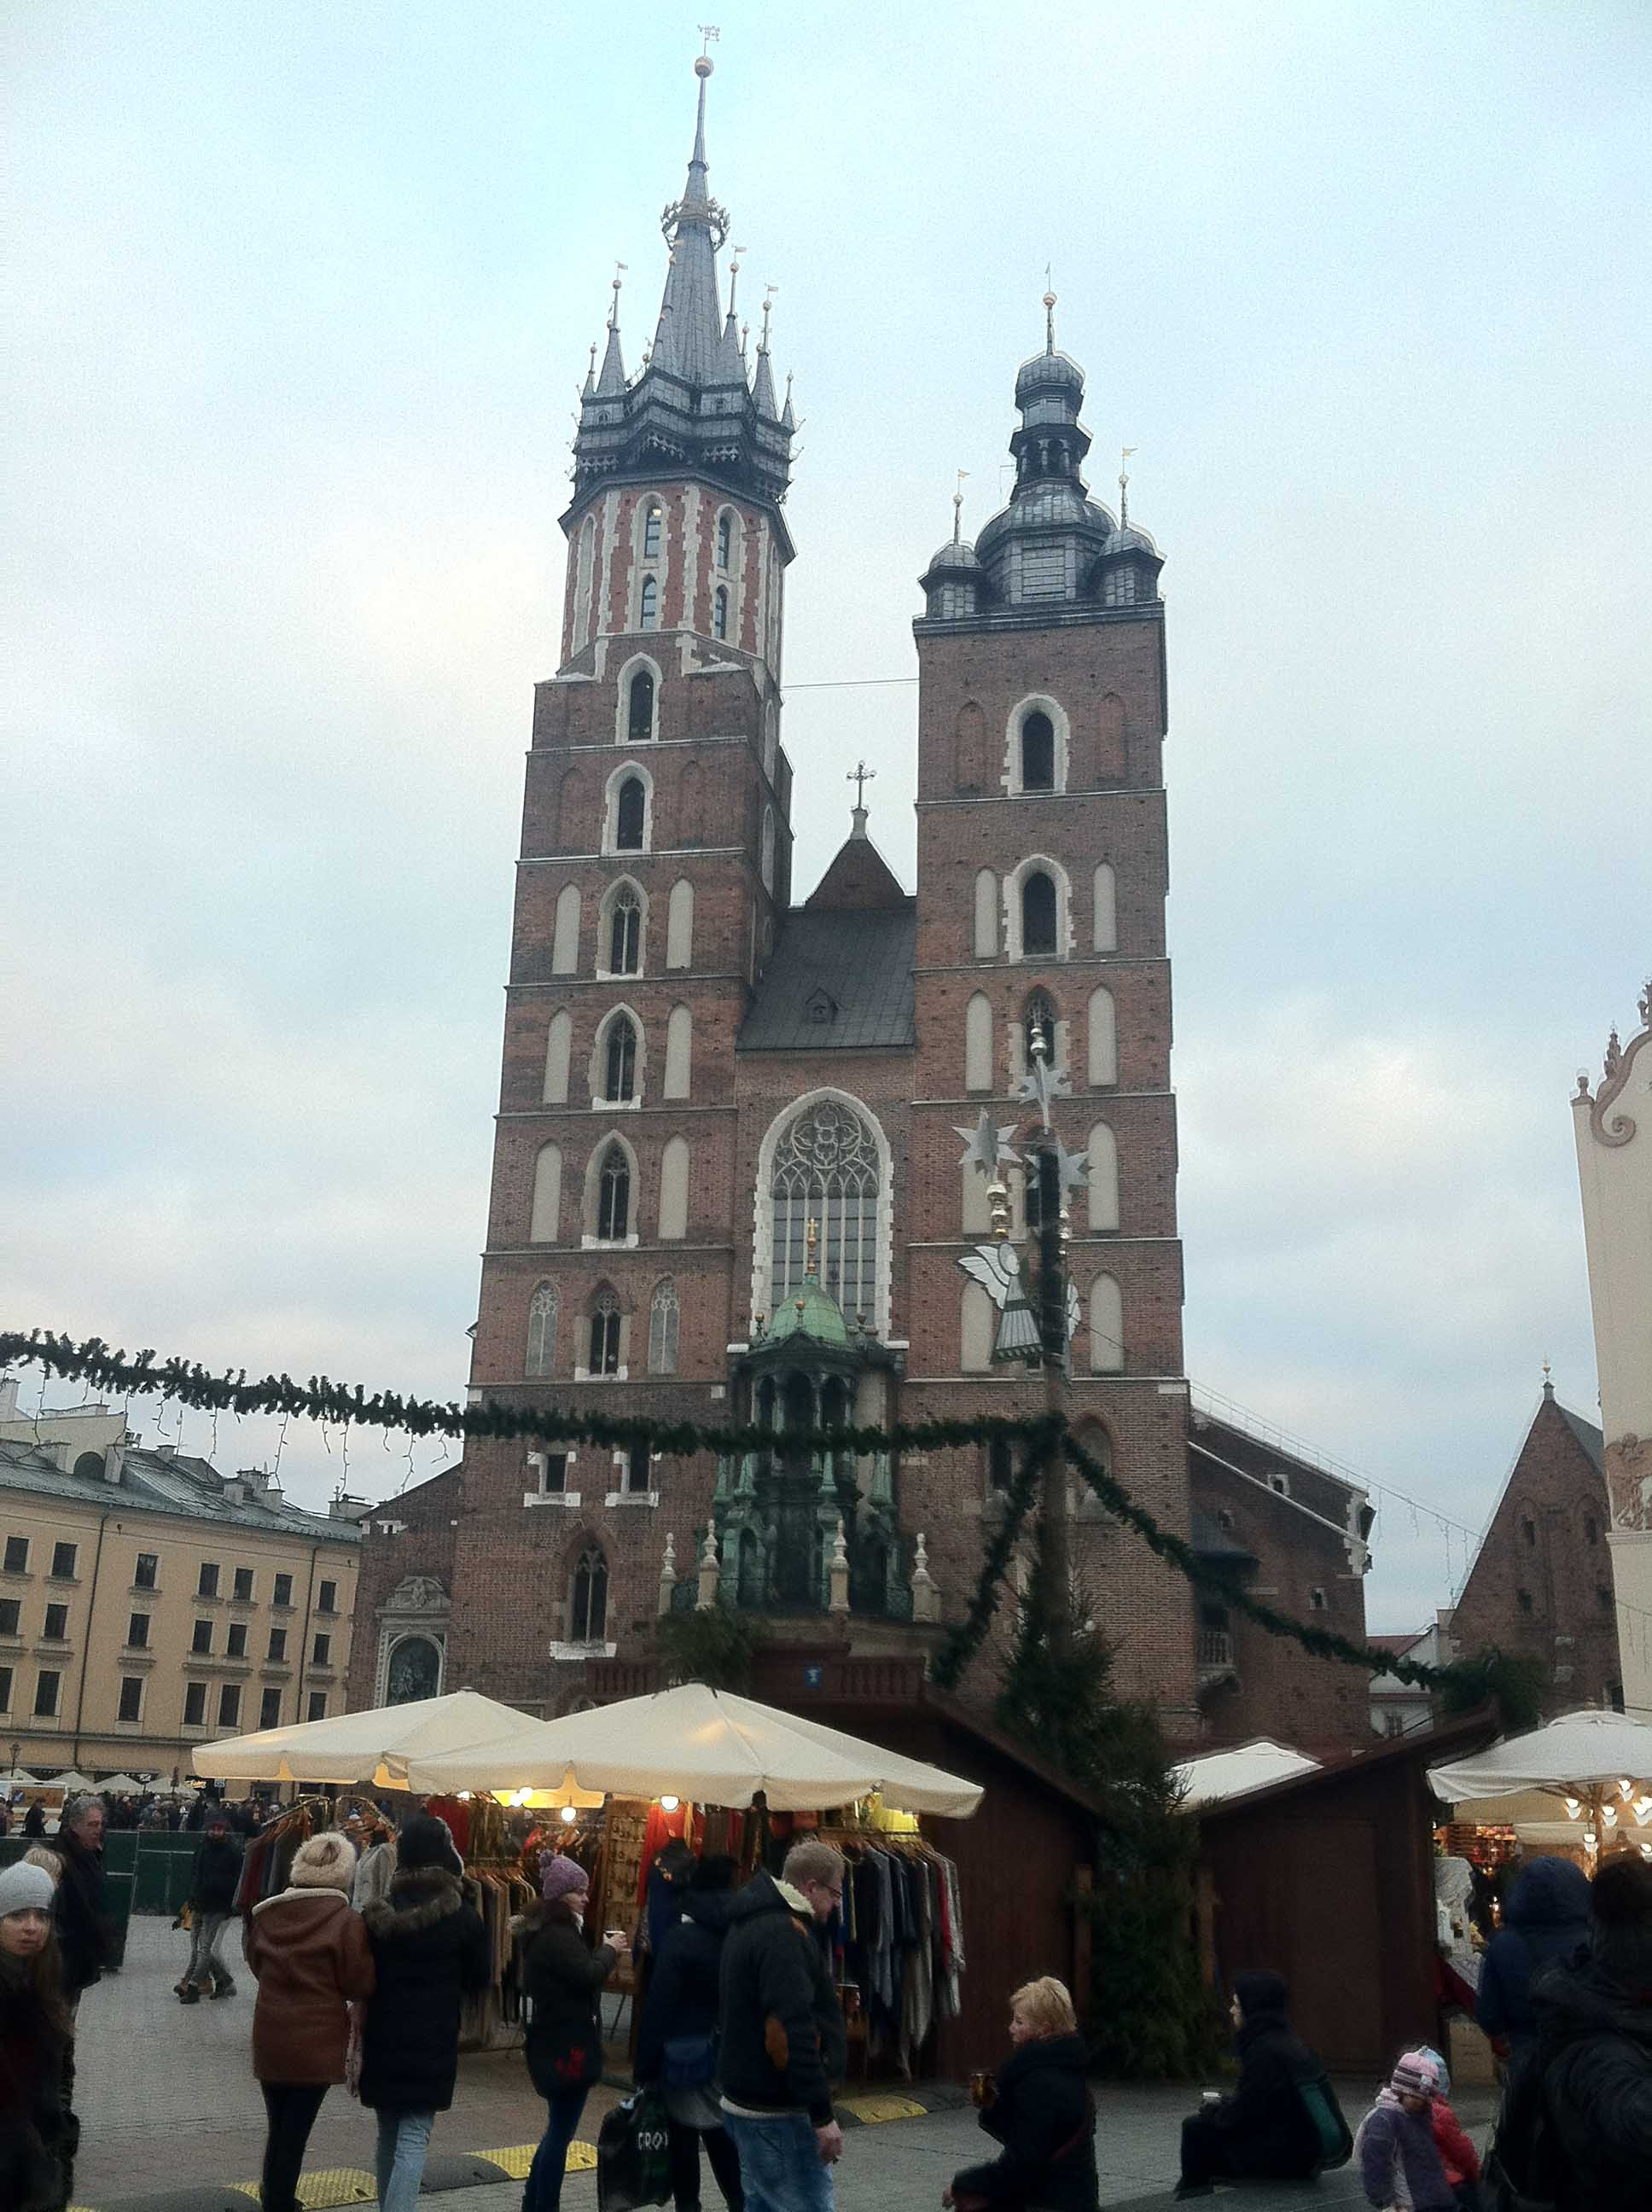 Captain Julian Kell and the ACHA D3 Select Team headed to Kraków, Poland and toured the city, visiting the Church of Our Lady Assumed into Heaven, or St. Mary's Church, which was built in the 14th century and is located near market square.